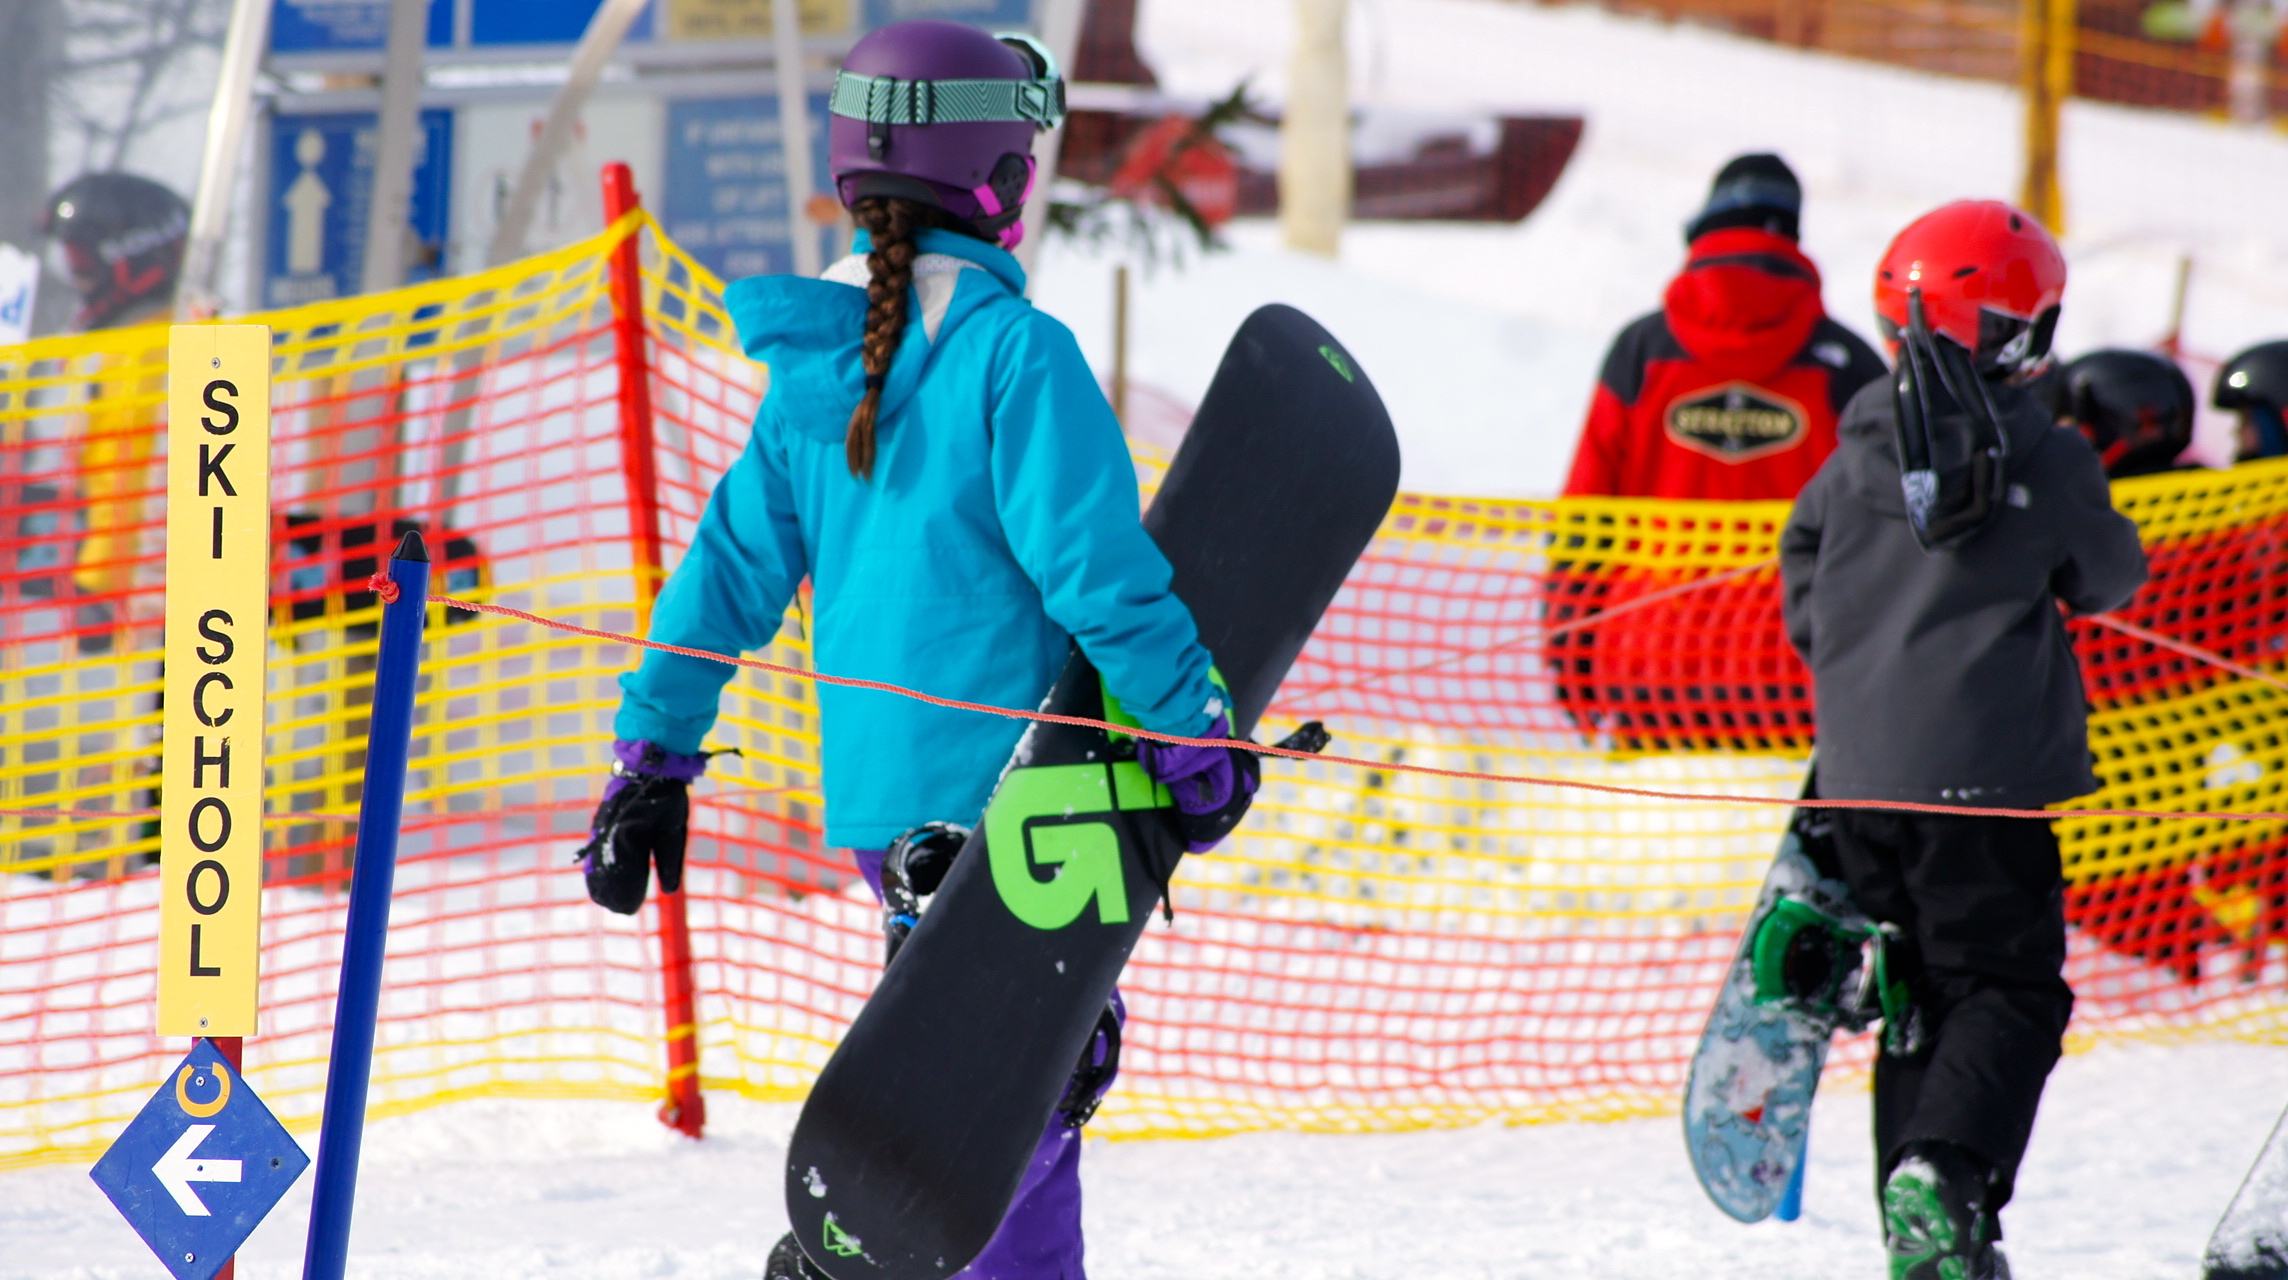 Learn to Ride at Stratton